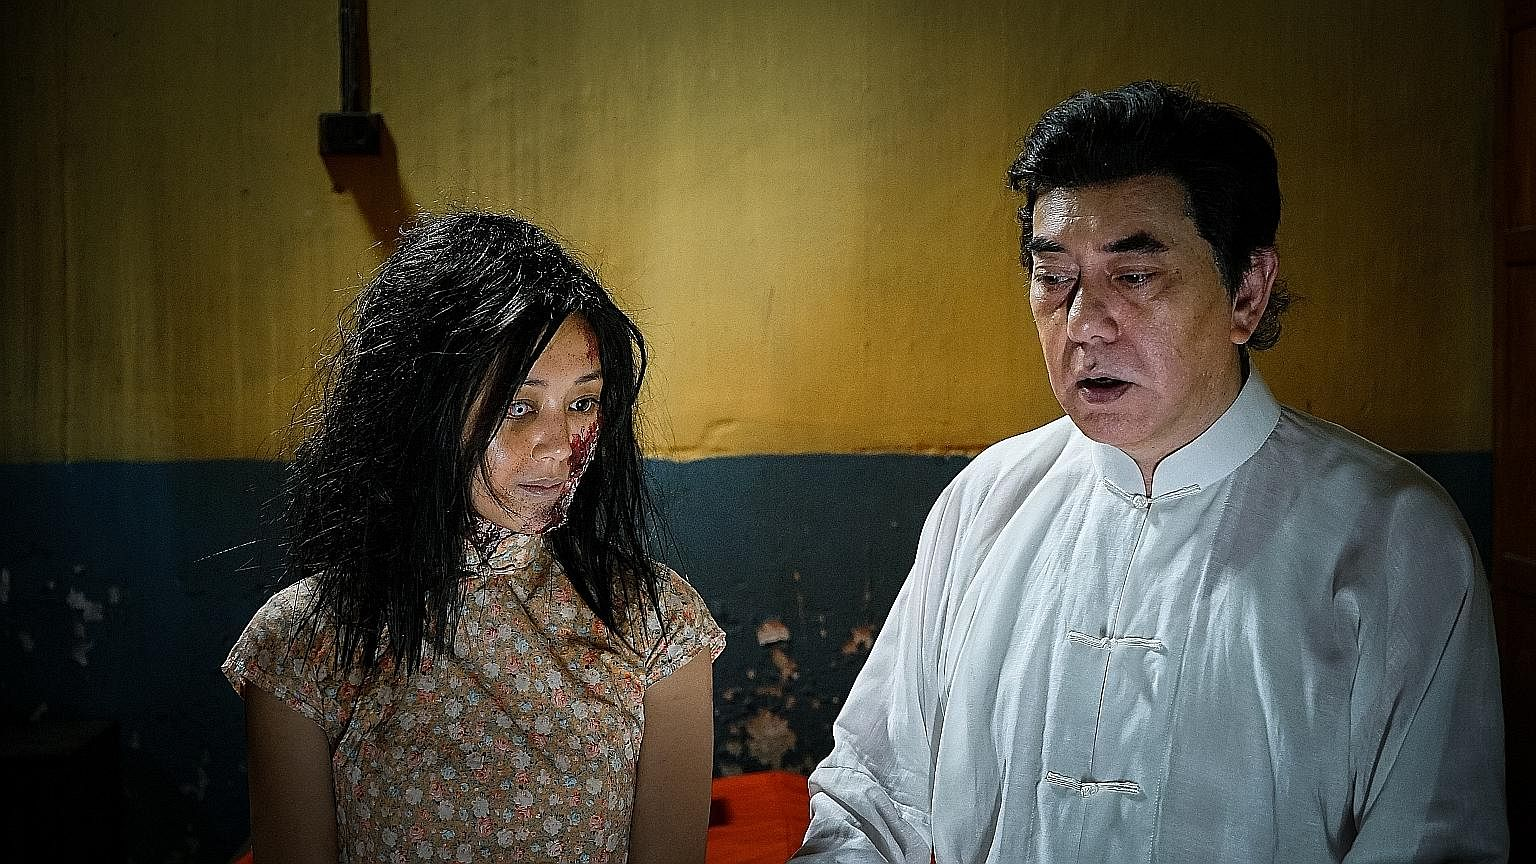 The Sleep Curse stars Anthony Wong as a sleep researcher and Michelle Wai as a sex slave.